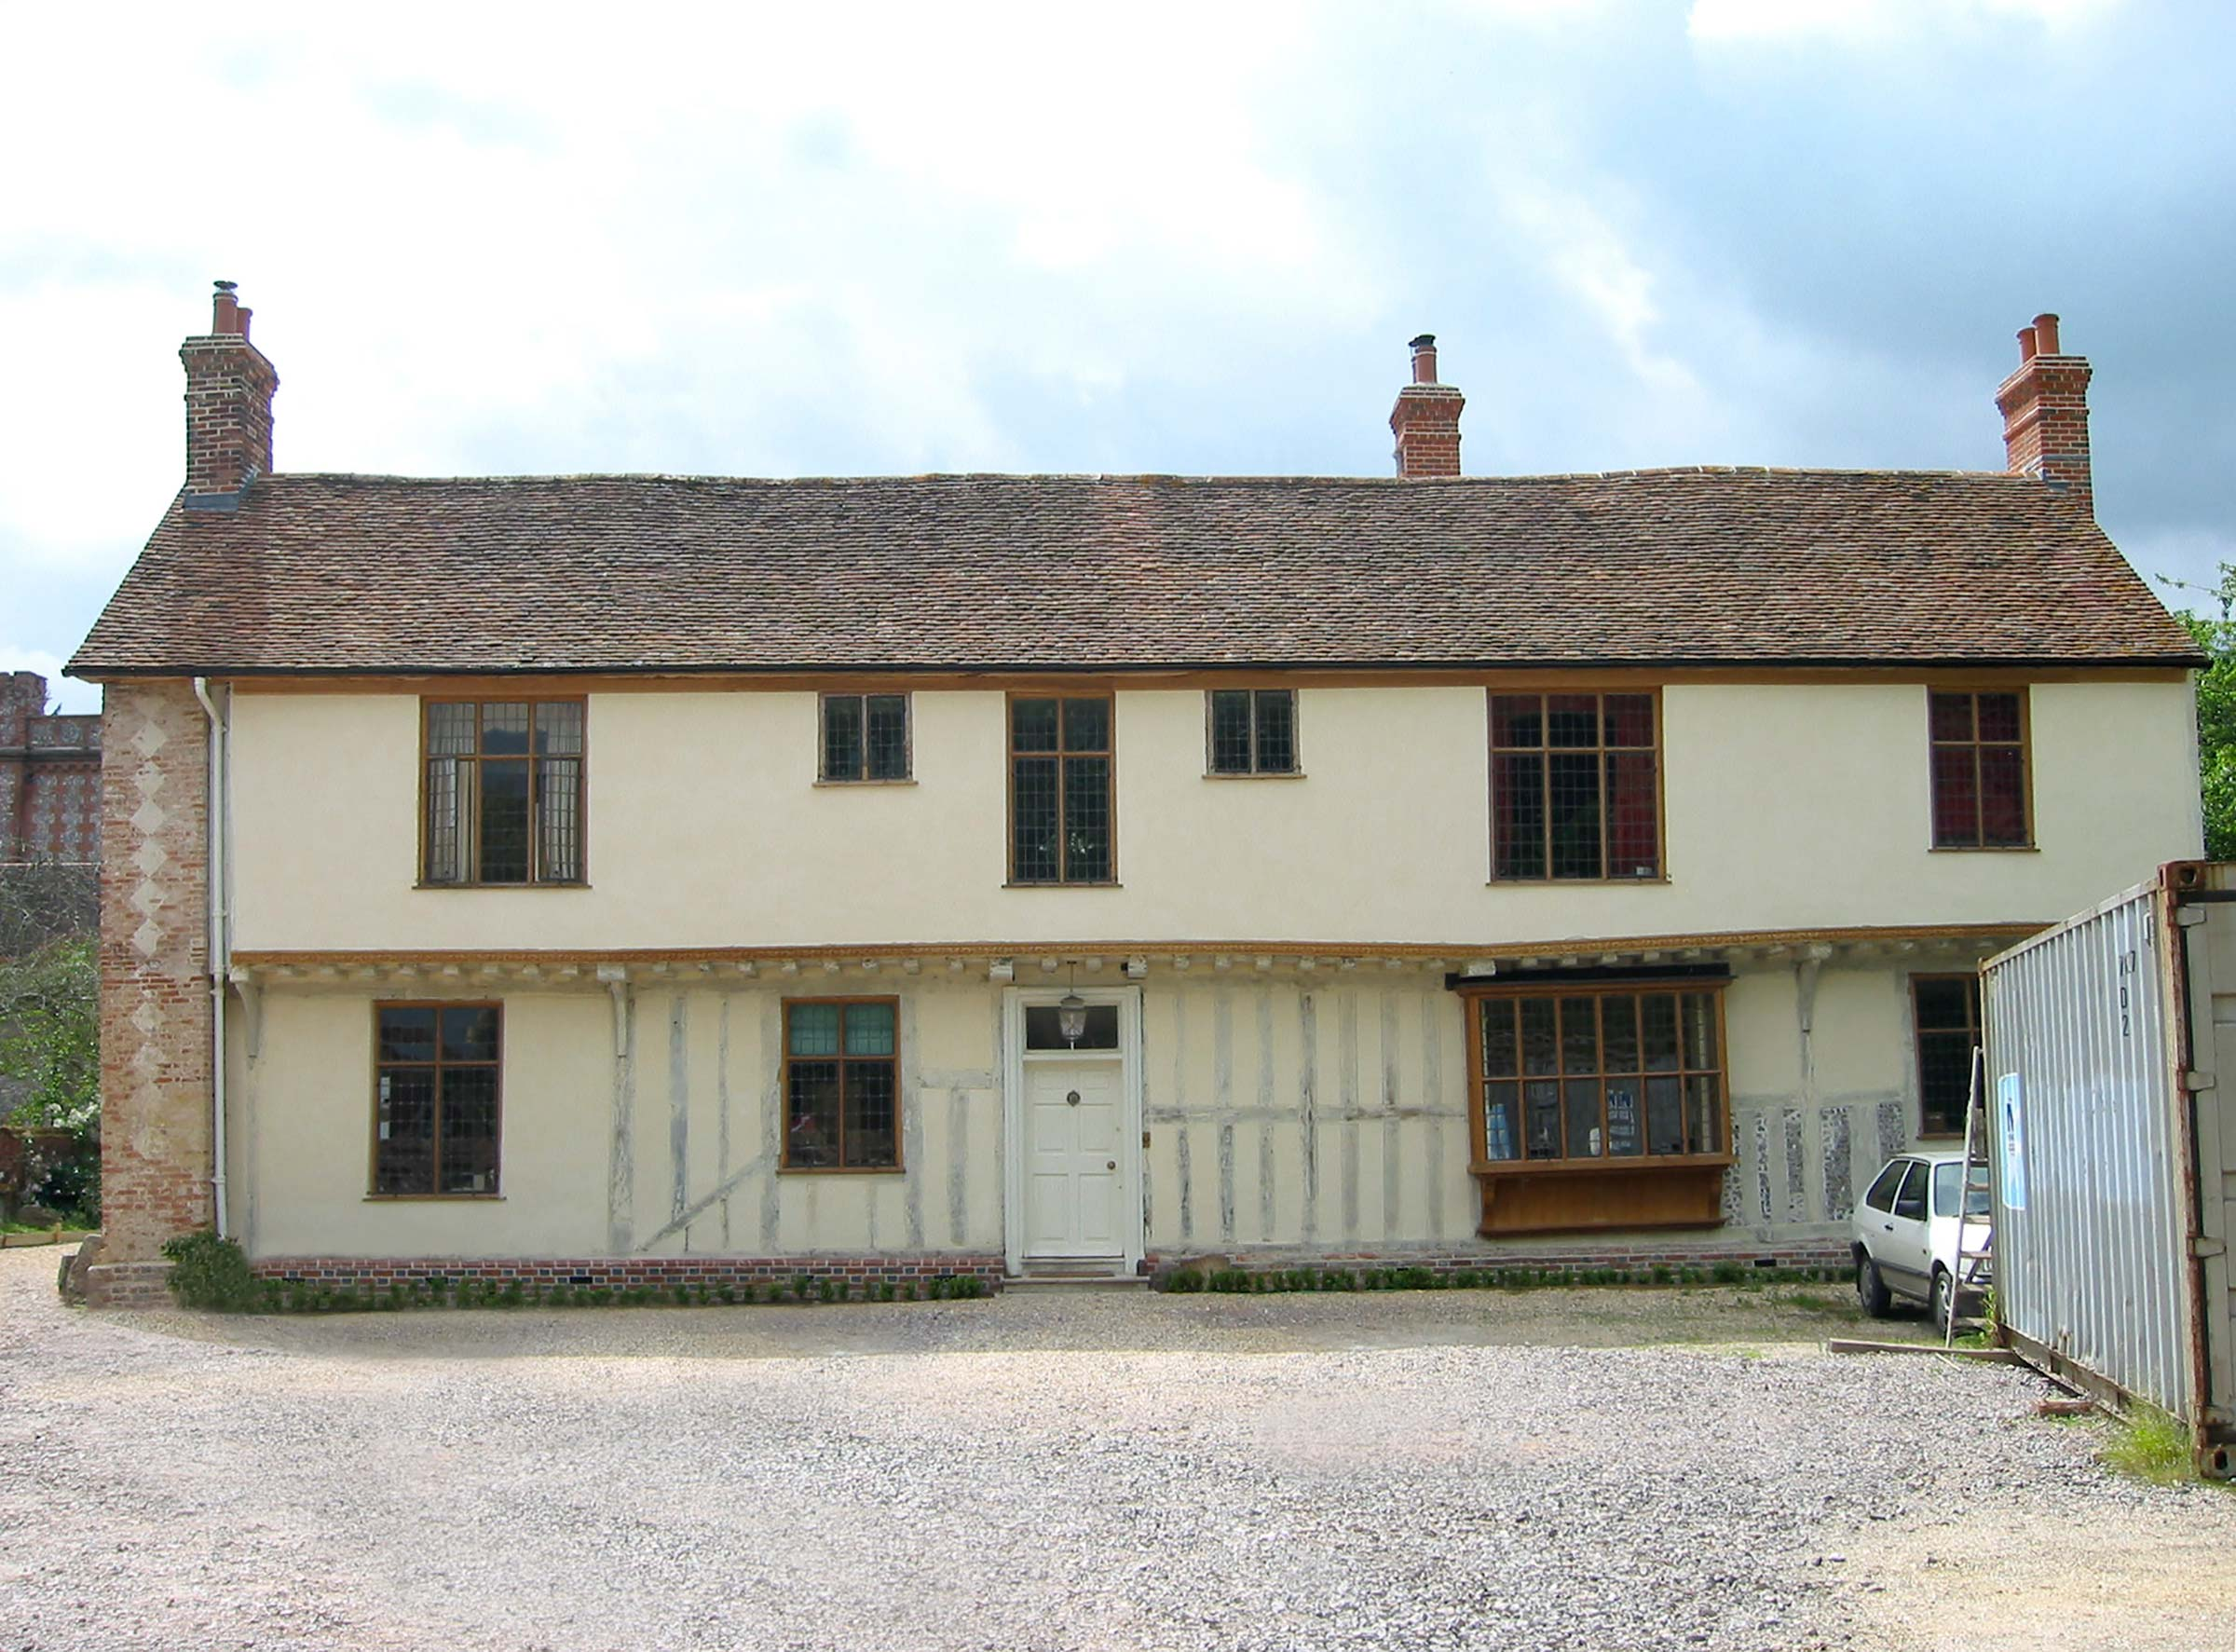 Restoration & extension of medieval house, Hampshire